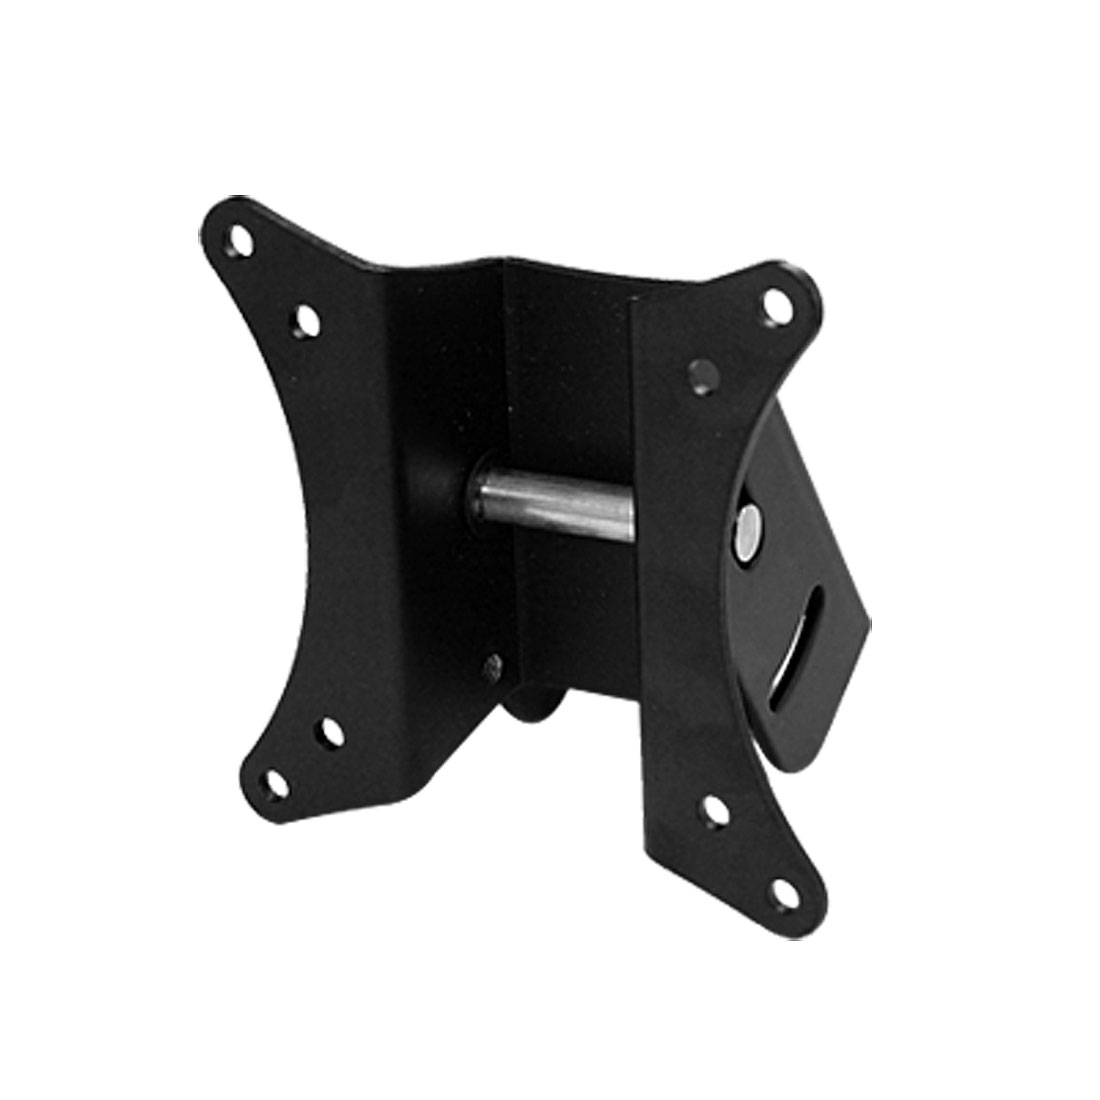 New Flat Panel LCD Display TV Screen Monitor Wall Mount Bracket